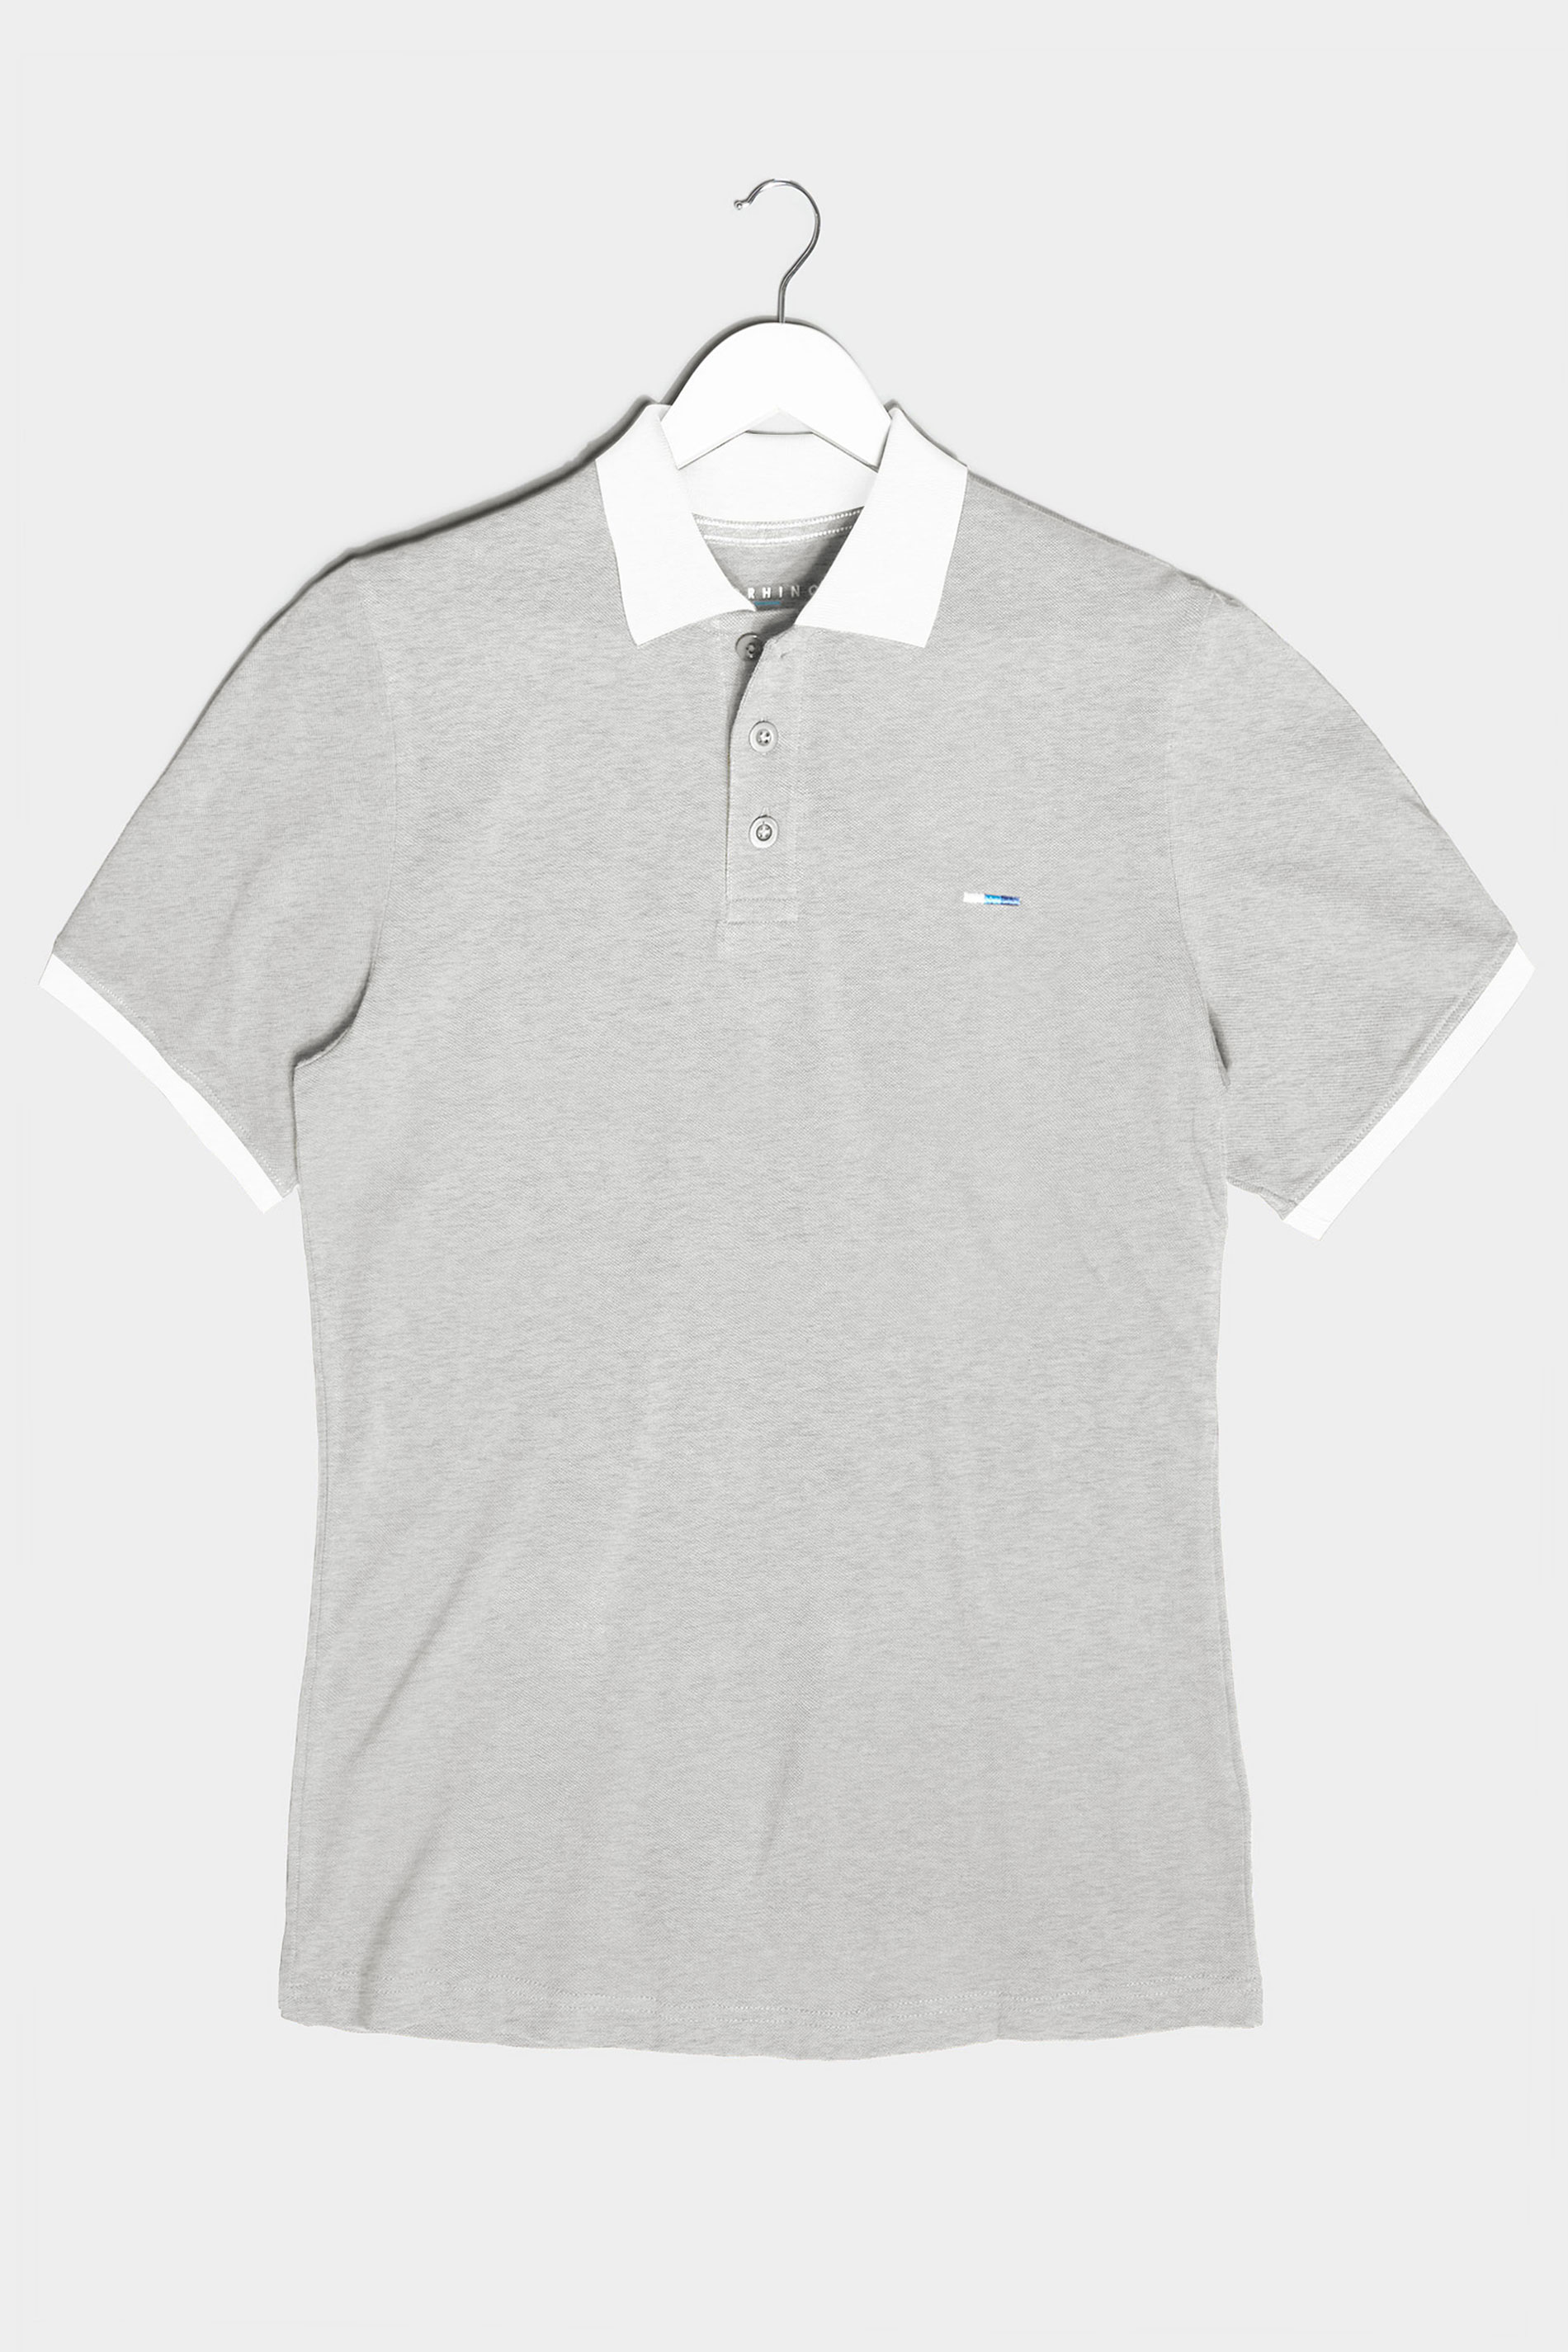 BadRhino Grey & White Contrast Polo Shirt